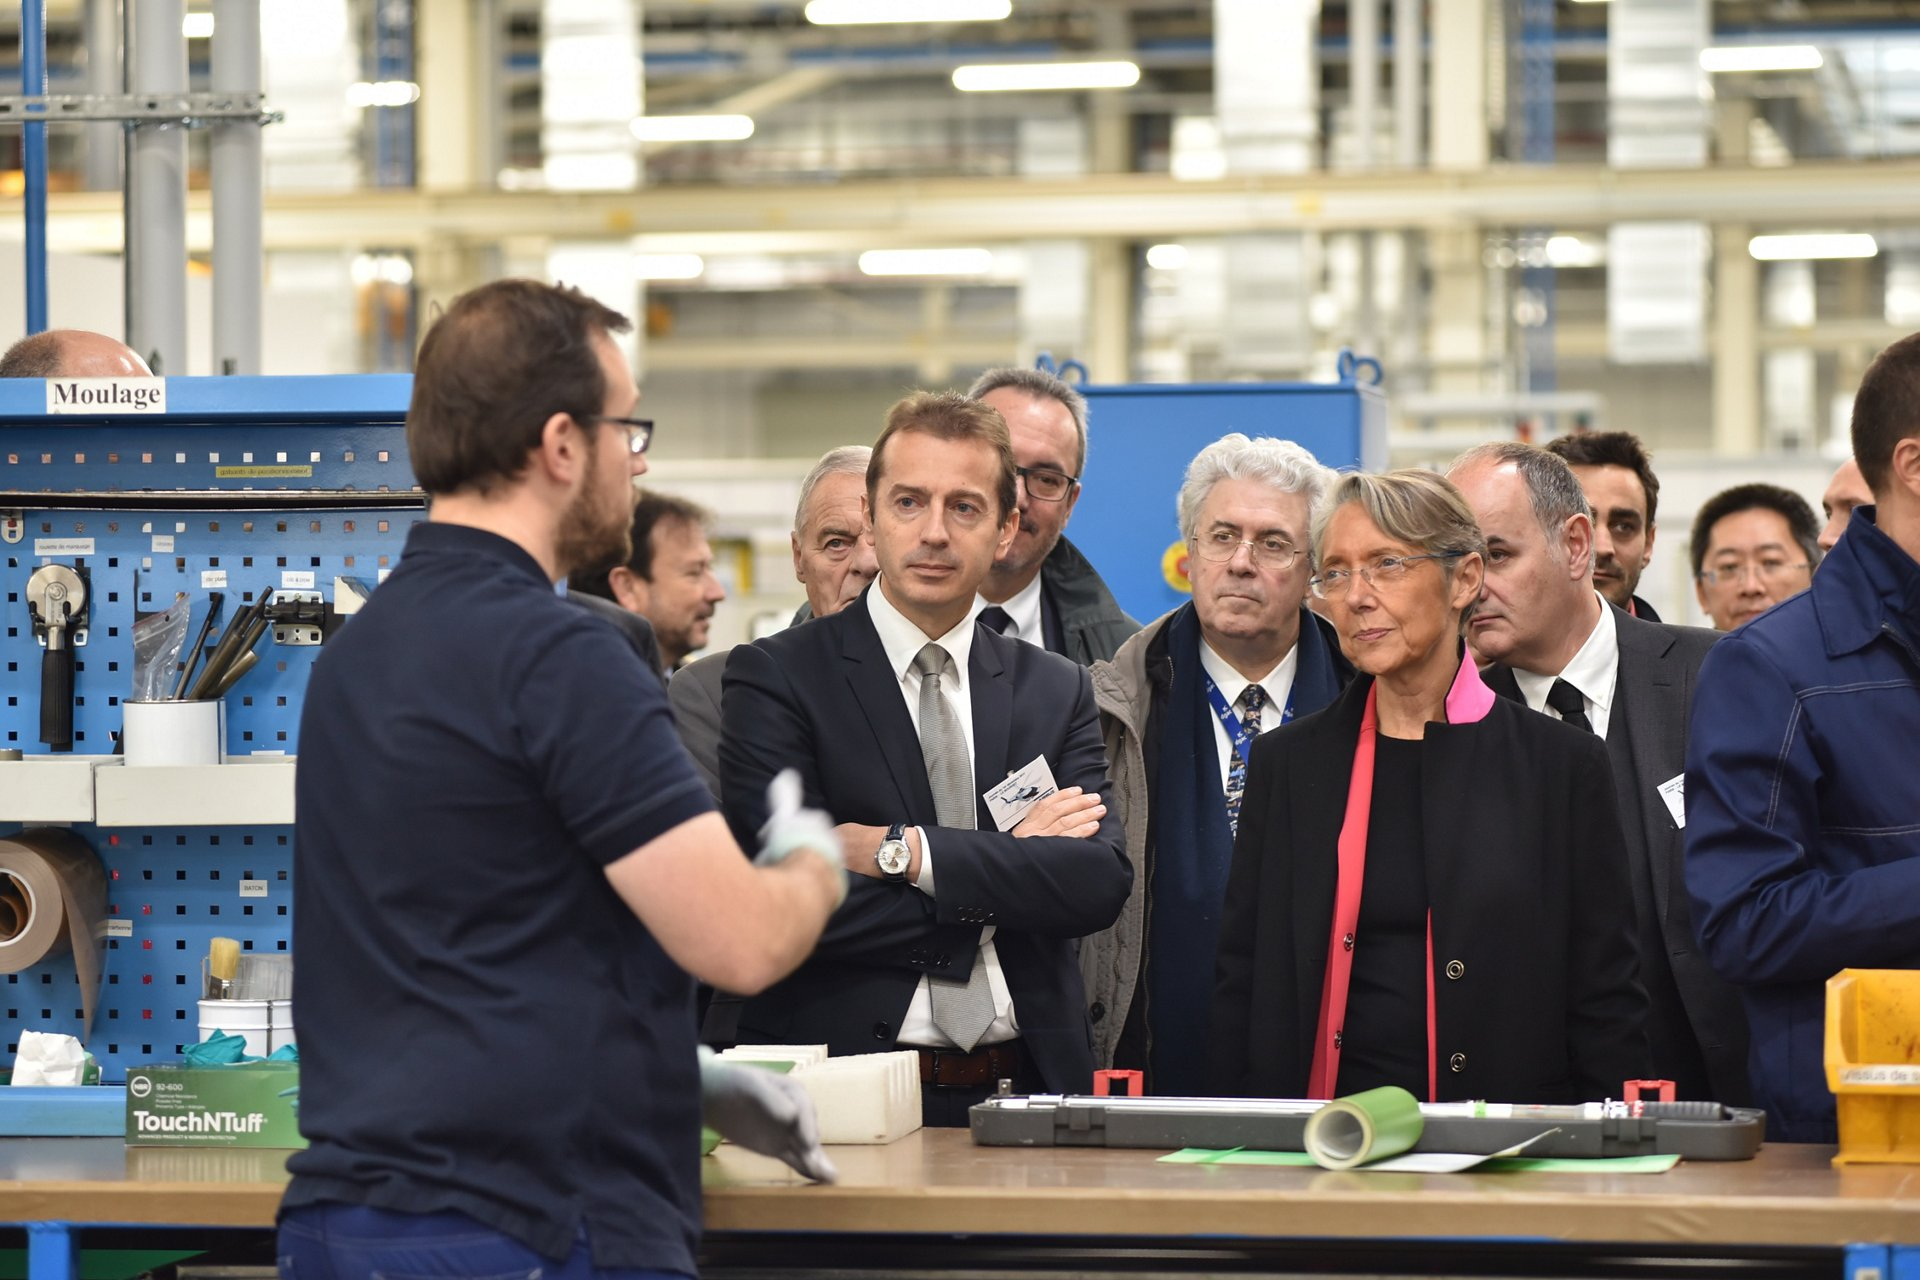 Élisabeth Borne, French Minister of Transport, with Guillaume Faury, CEO of Airbus Helicopters, touring the Paris-Le Bourget blades production site following the opening ceremony on Friday 1 December.